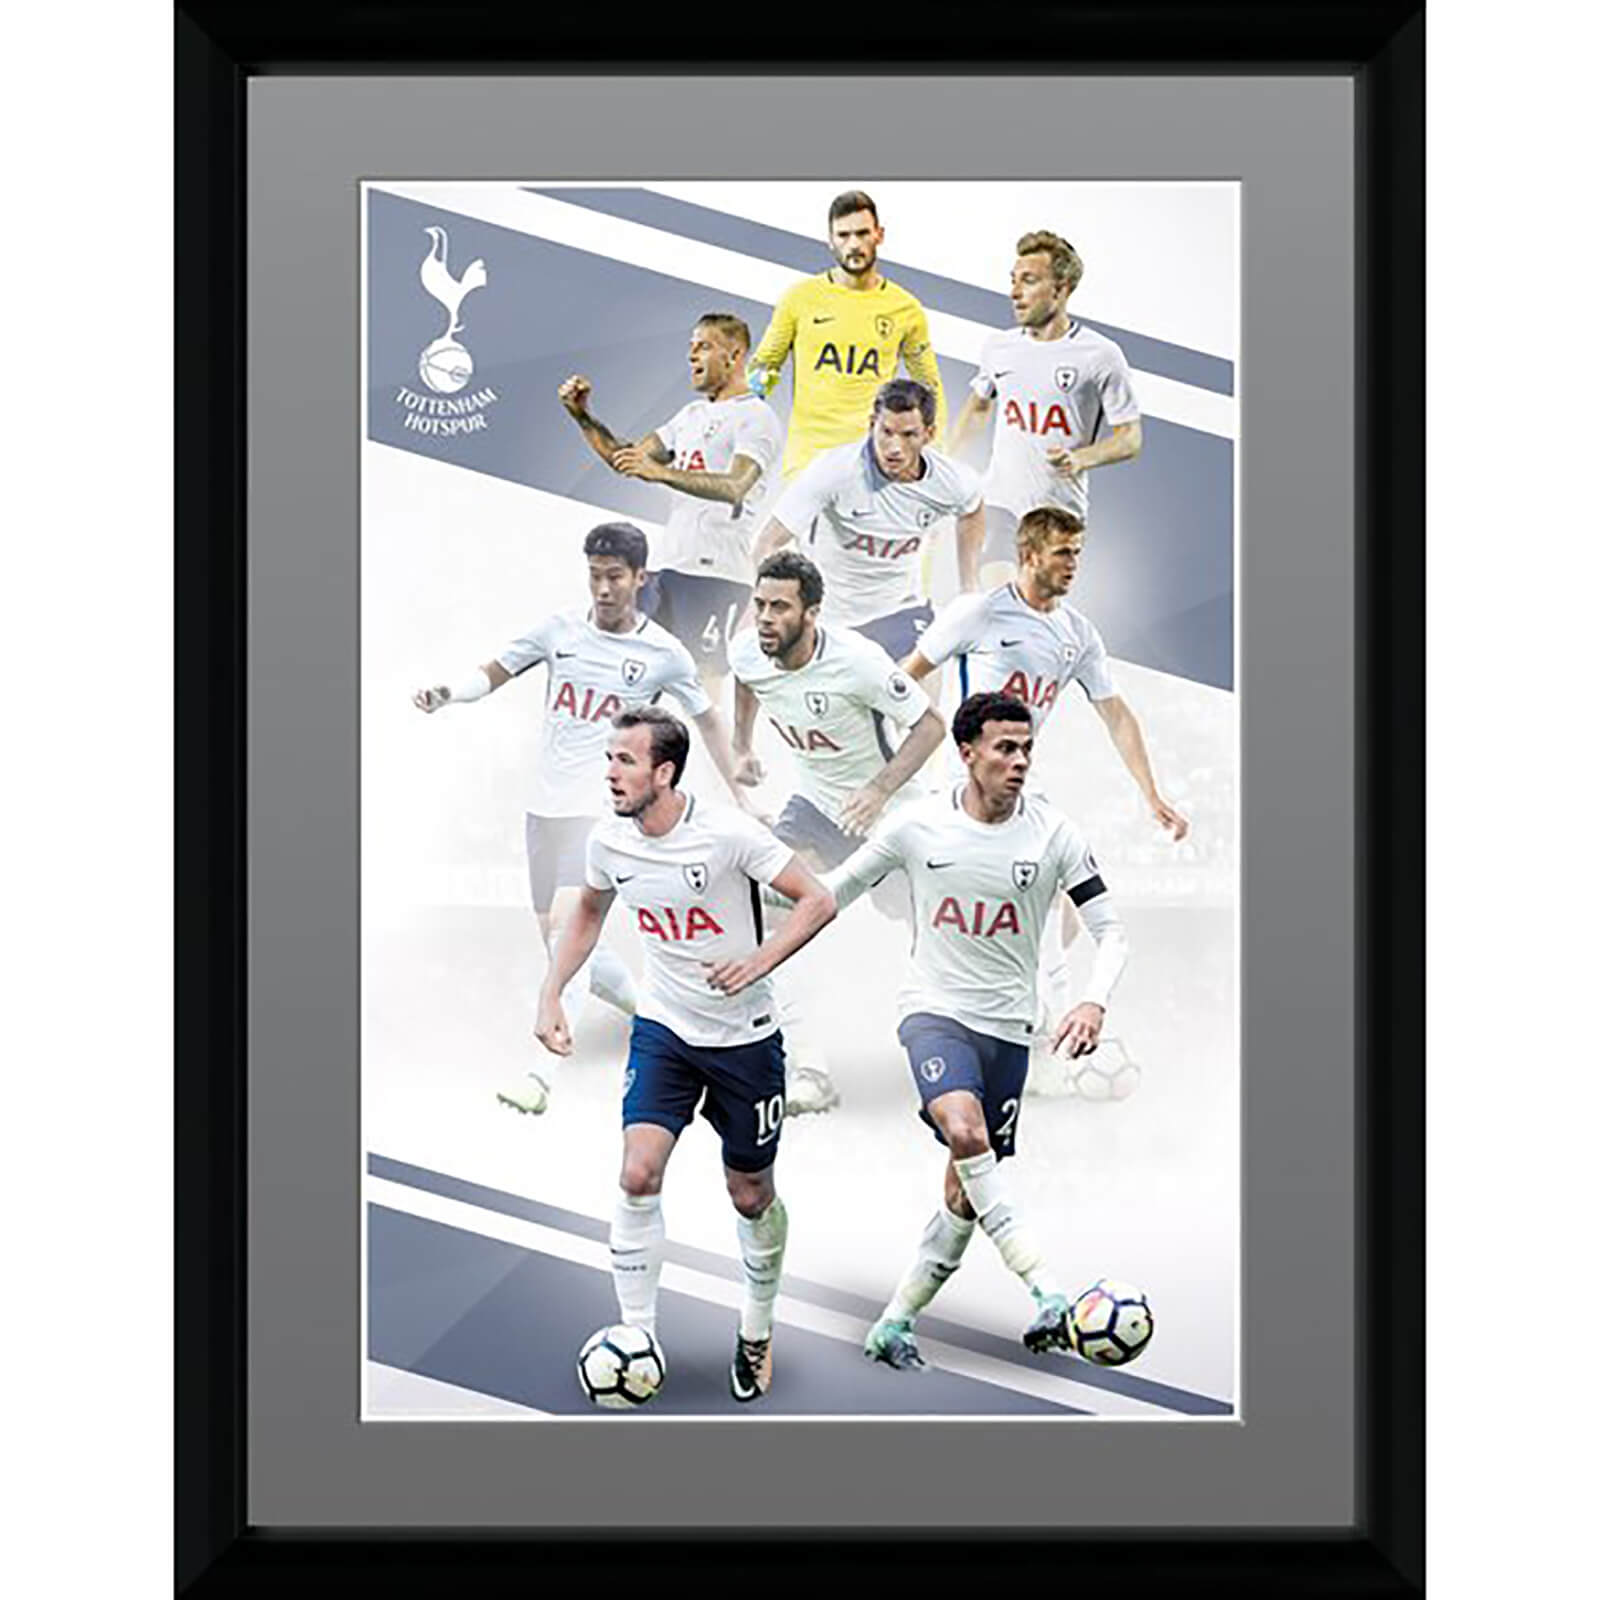 Tottenham Players 17/18 Framed Photograph 12 x 16 Inch